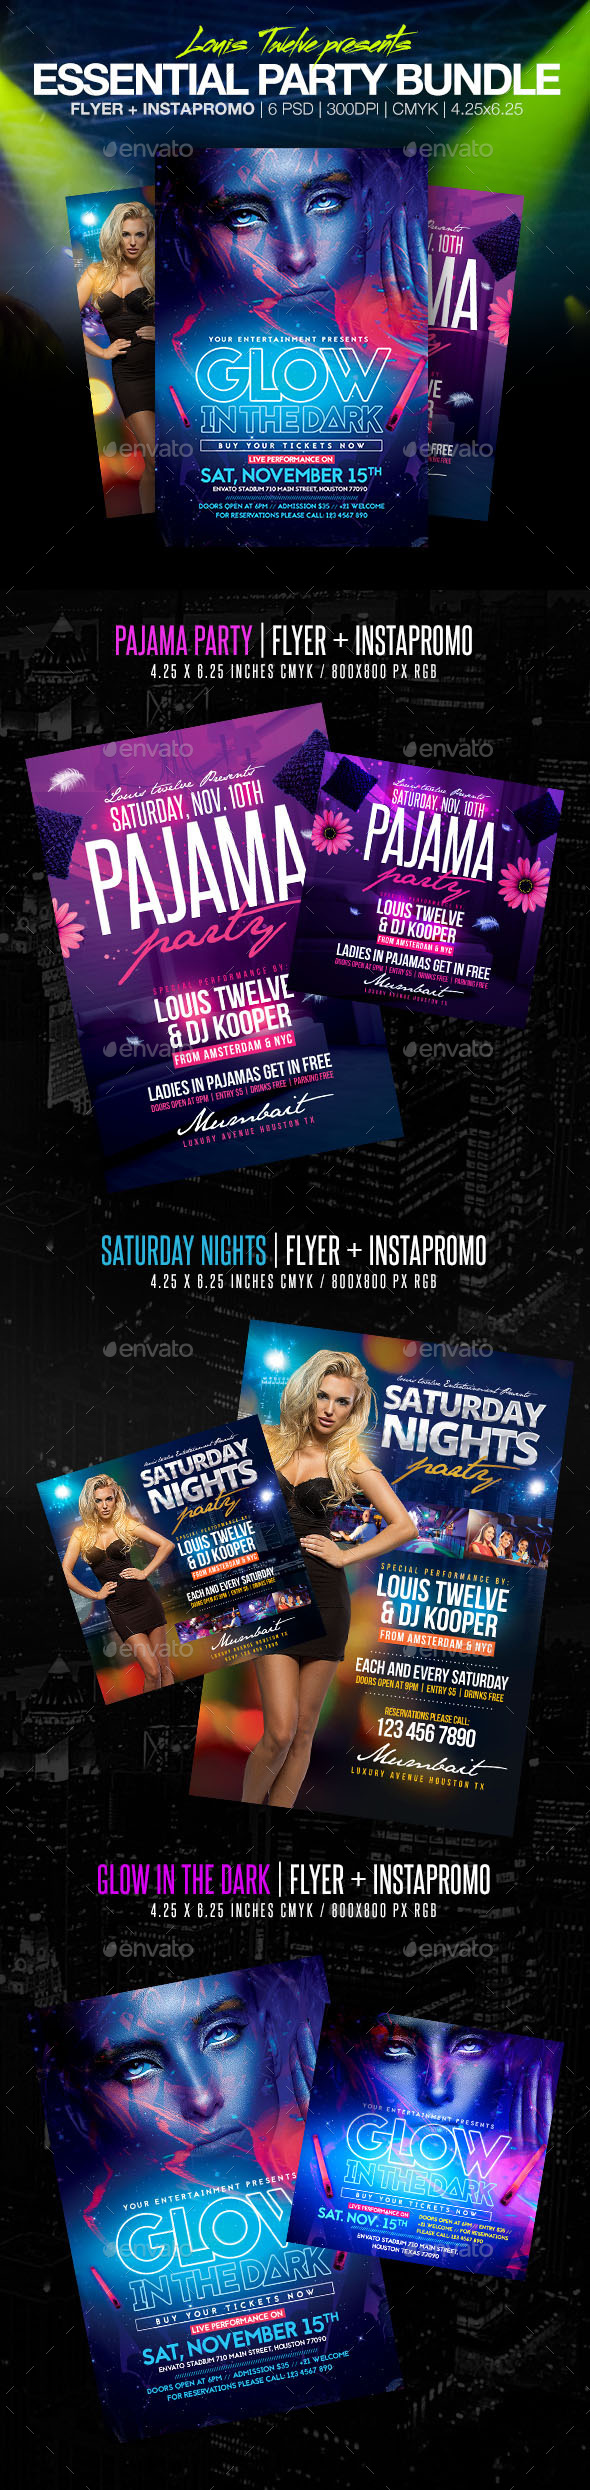 Essential Party Bundle Flyers & Instapromos